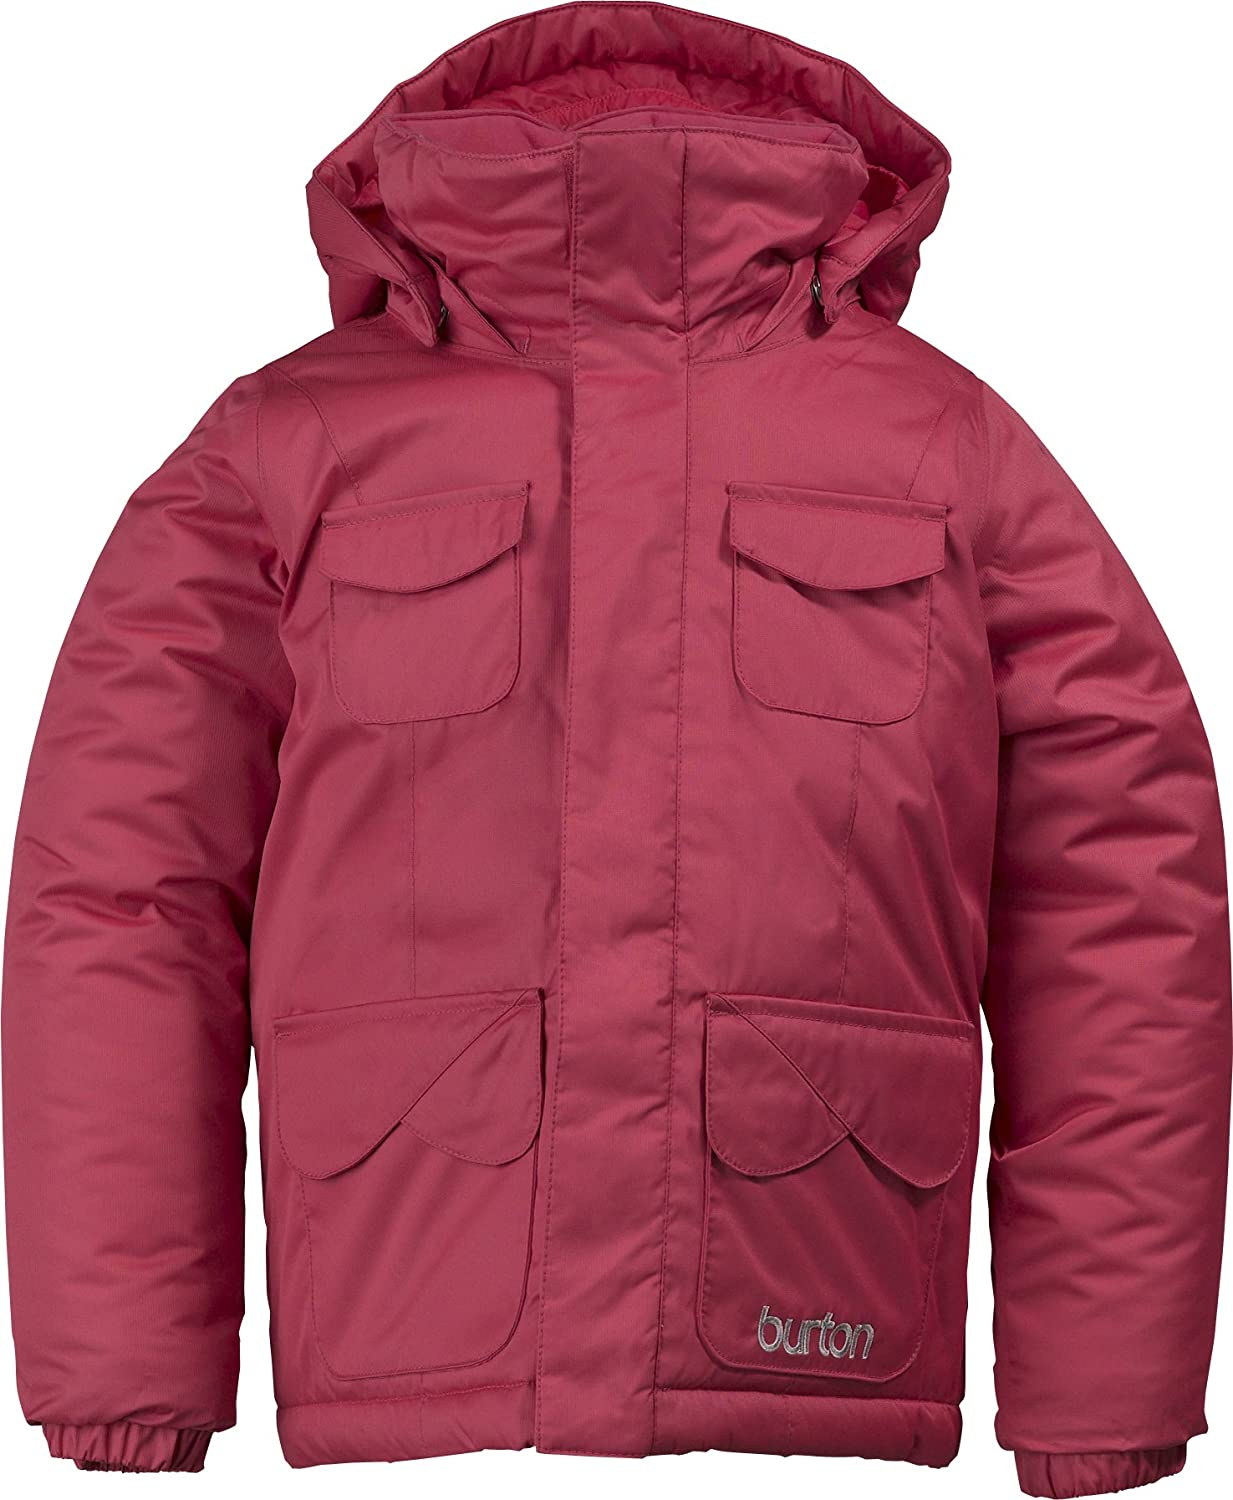 BURTON Kinder Snowboardjacke Girls Kinder MINI TWIST günstig